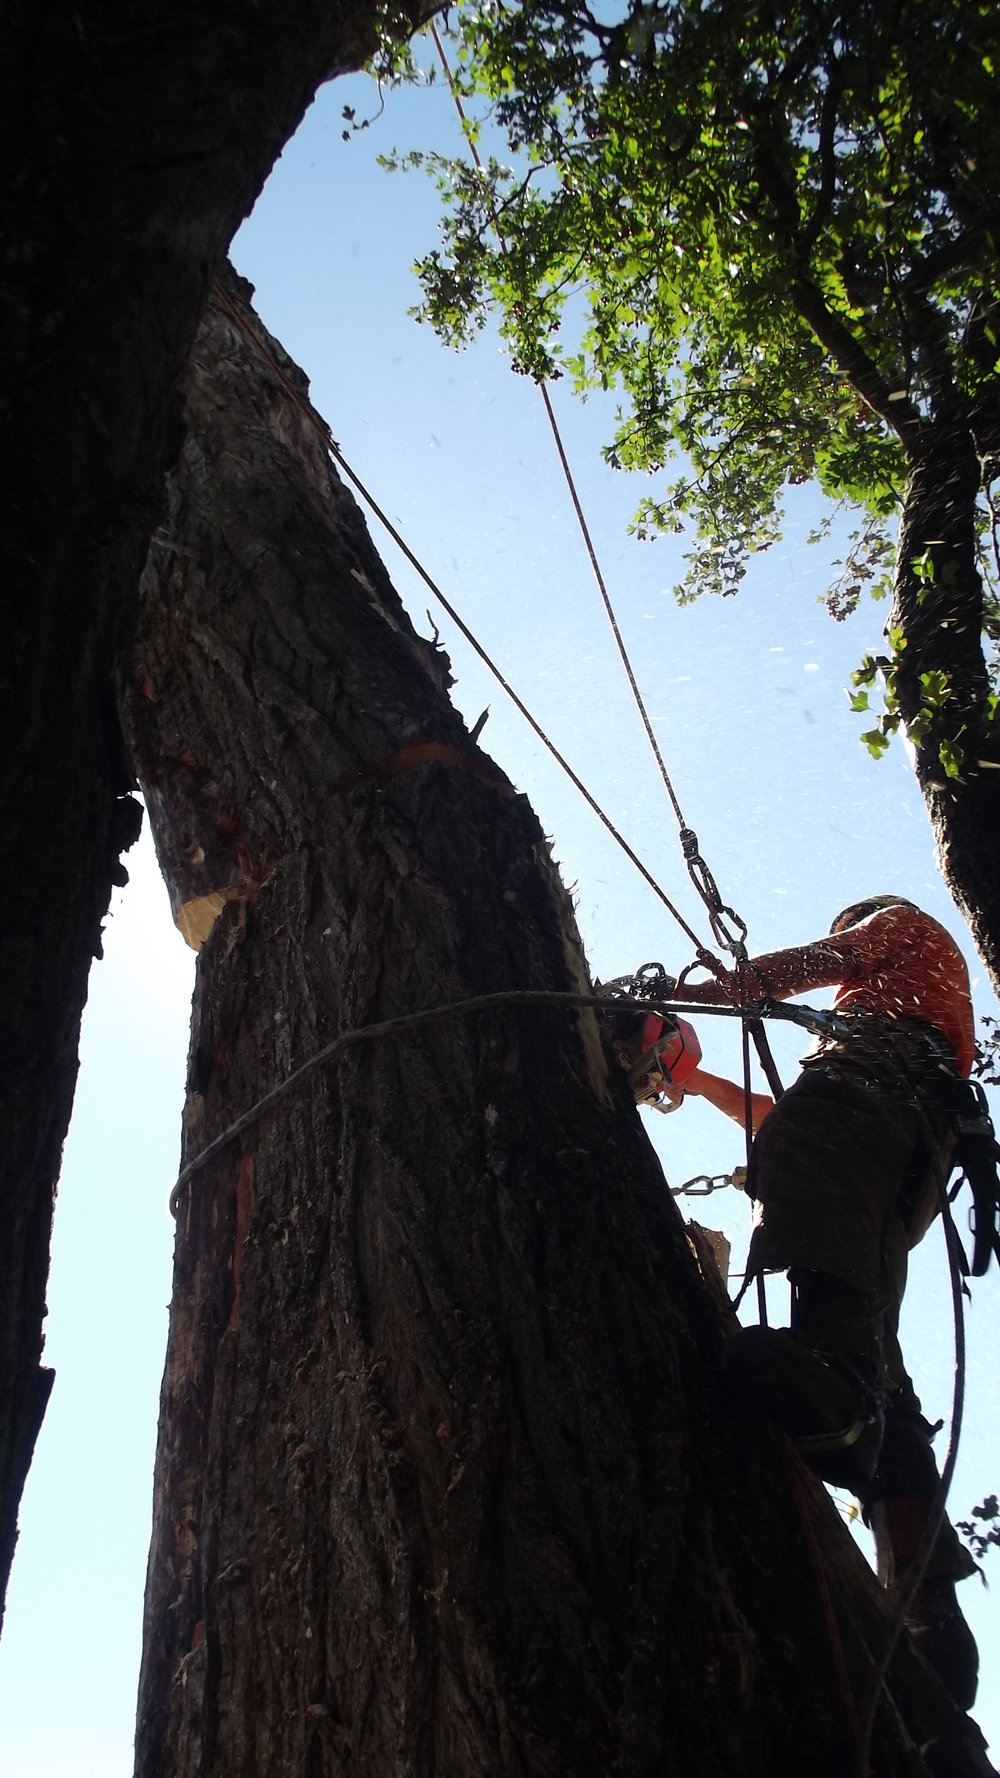 Dying Lombardy Poplar Removal